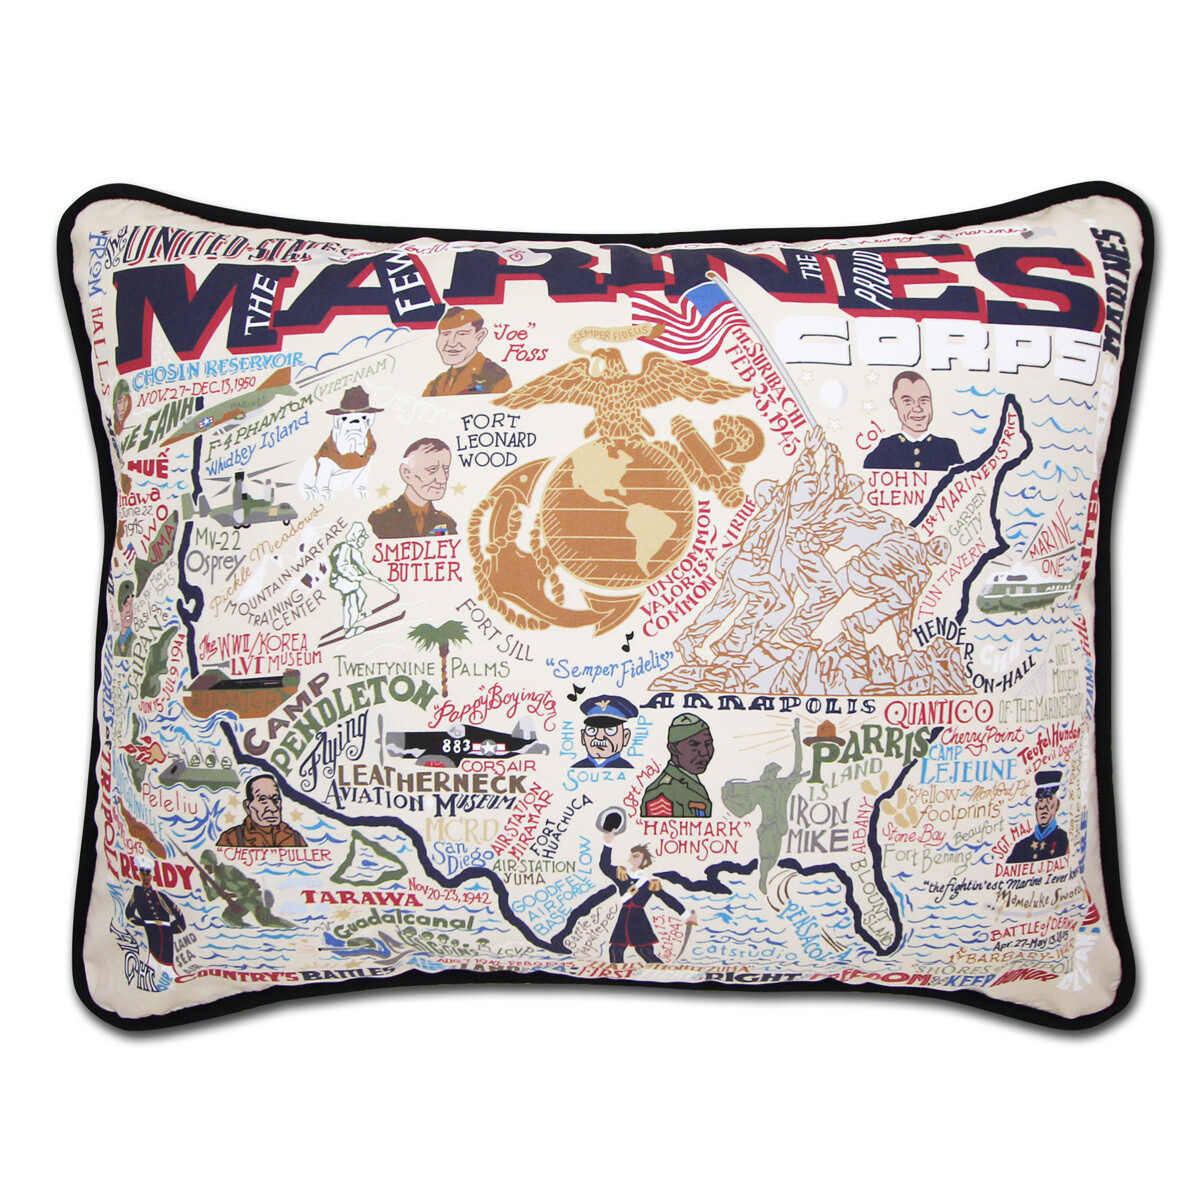 Marines pillow